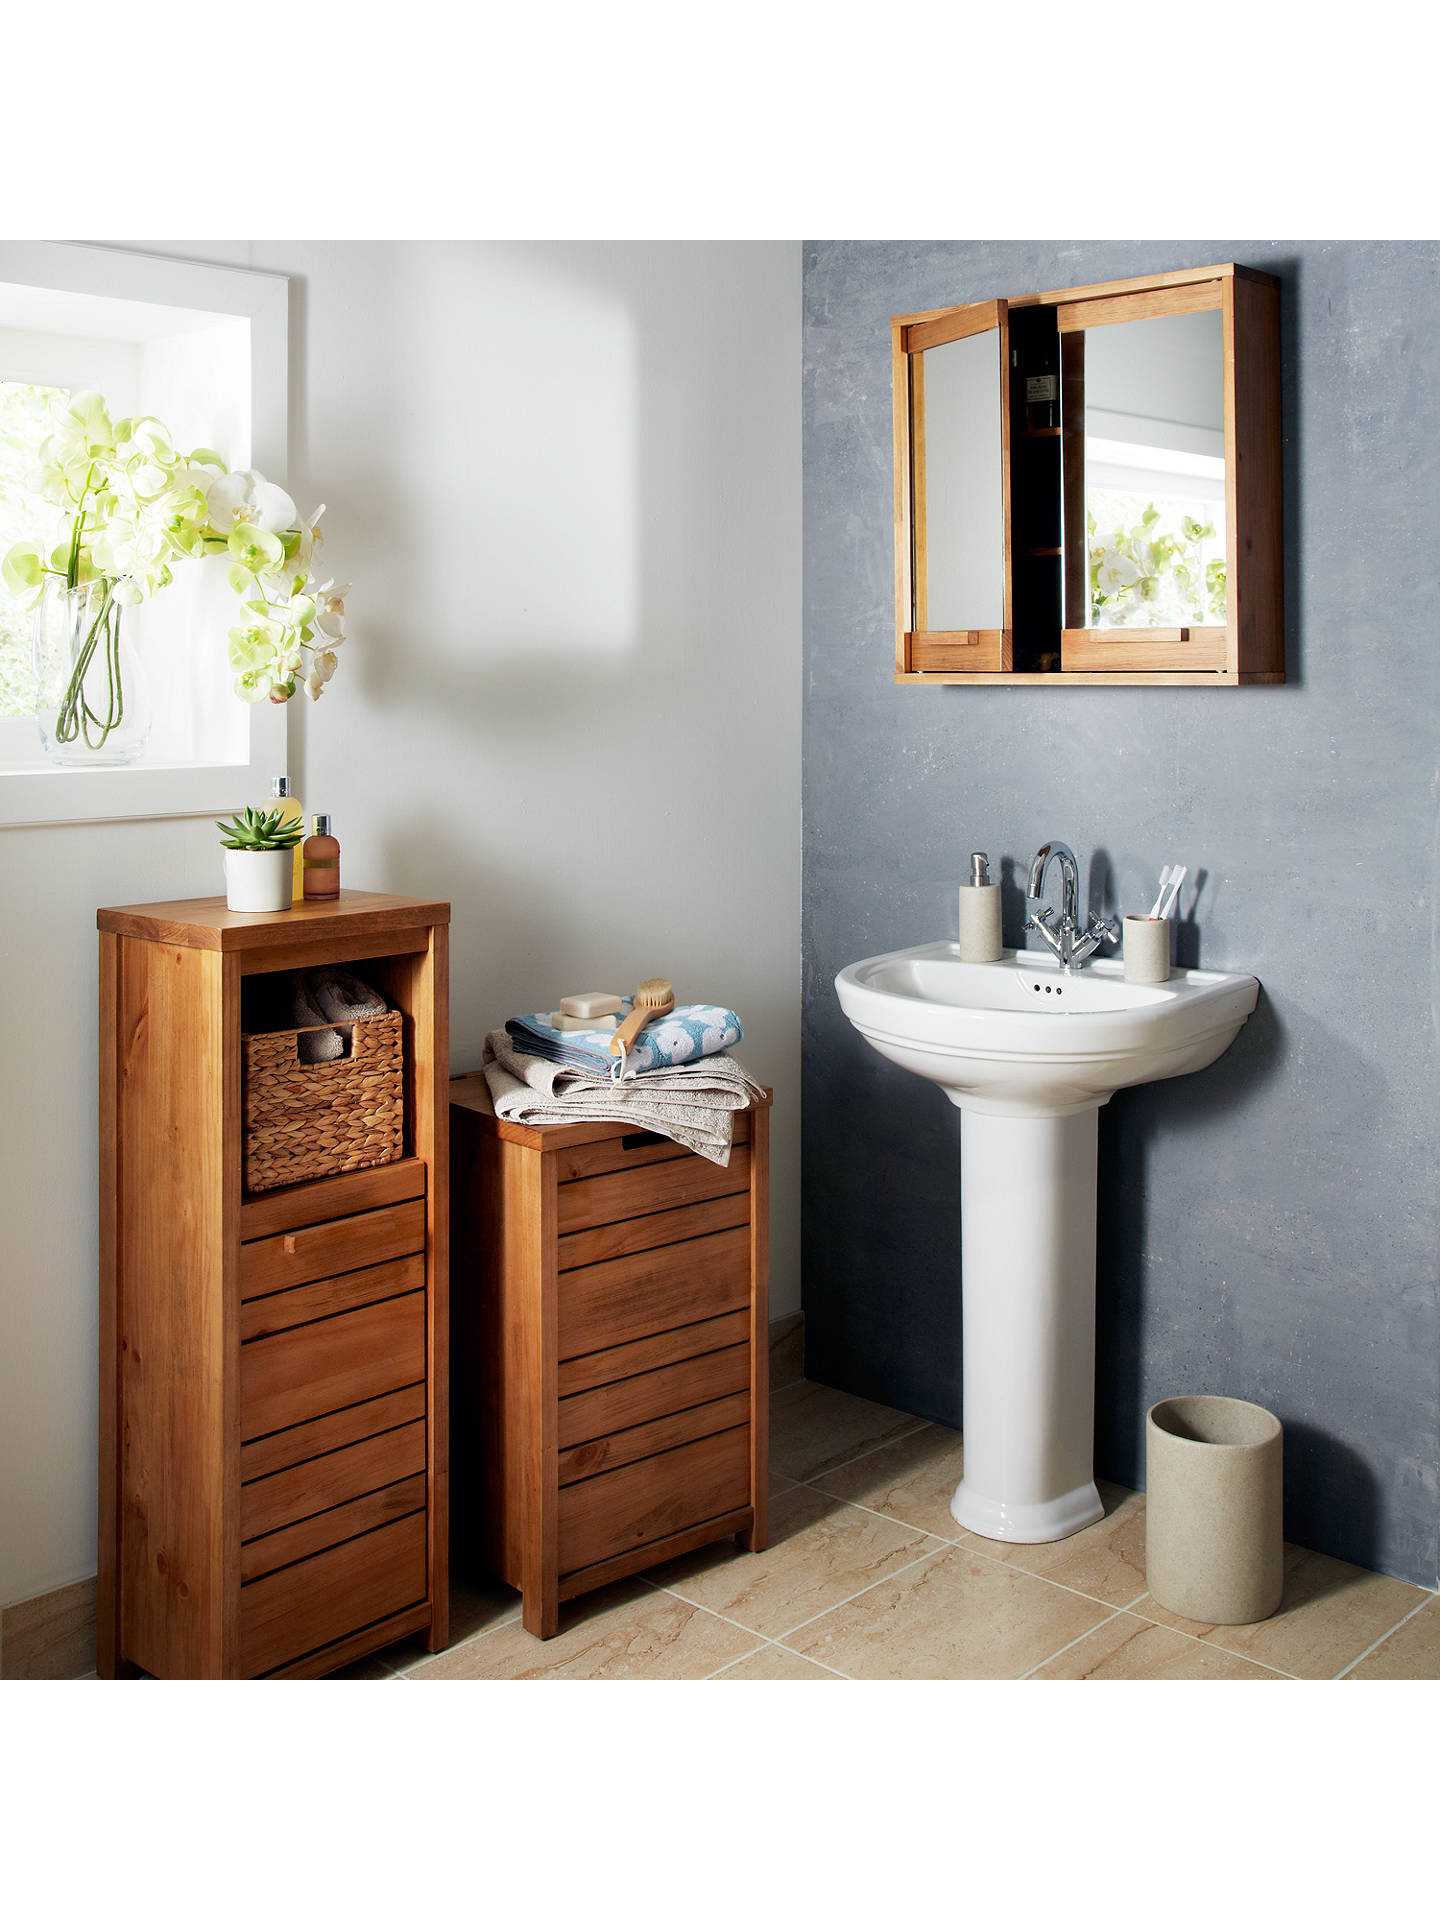 John Lewis Cayman Double Mirrored Bathroom Cabinet At John